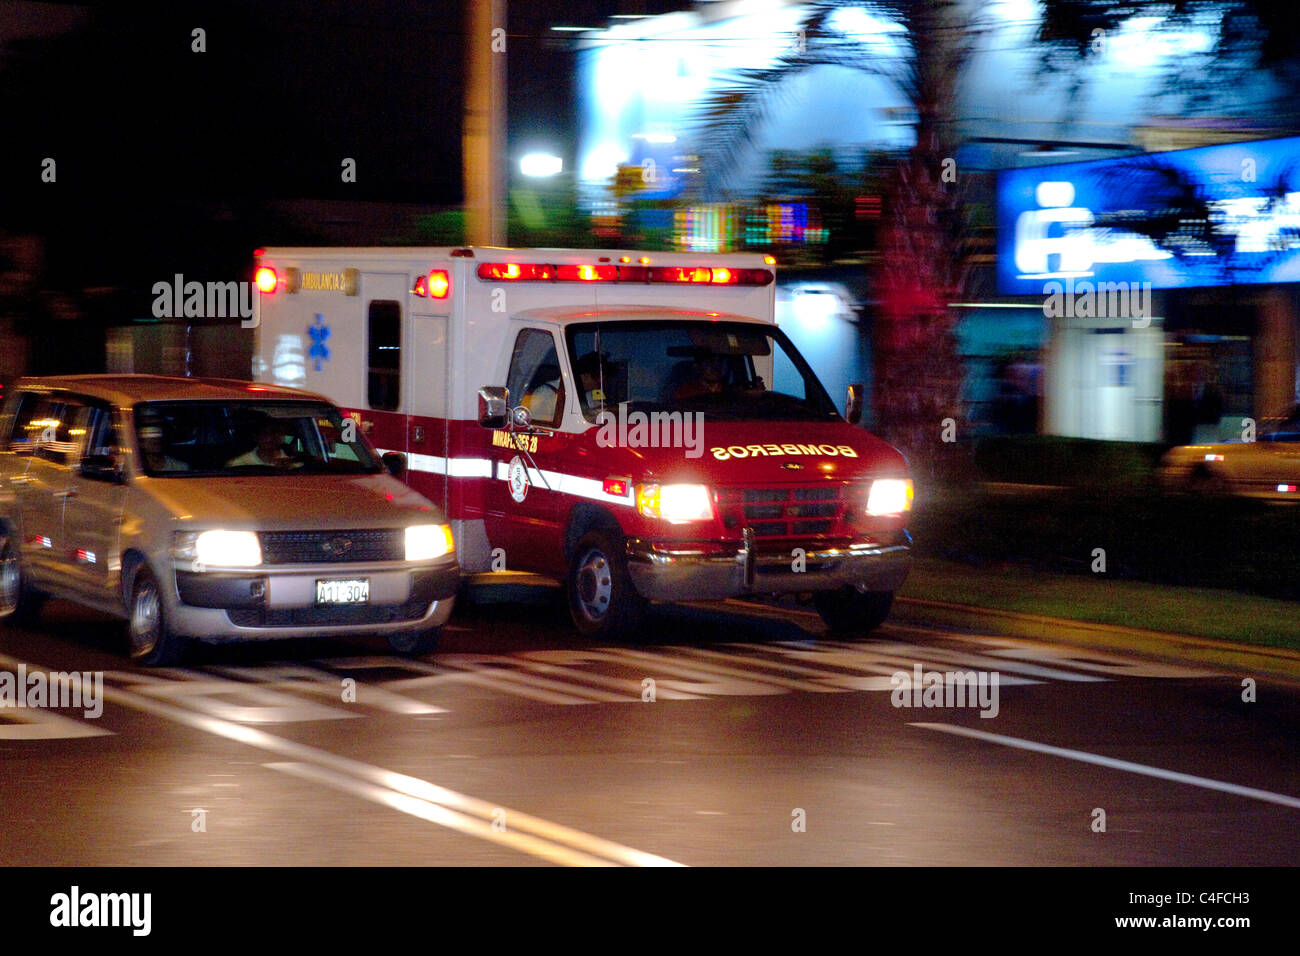 Ambulance in motion in the Miraflores district of Lima, Peru. - Stock Image